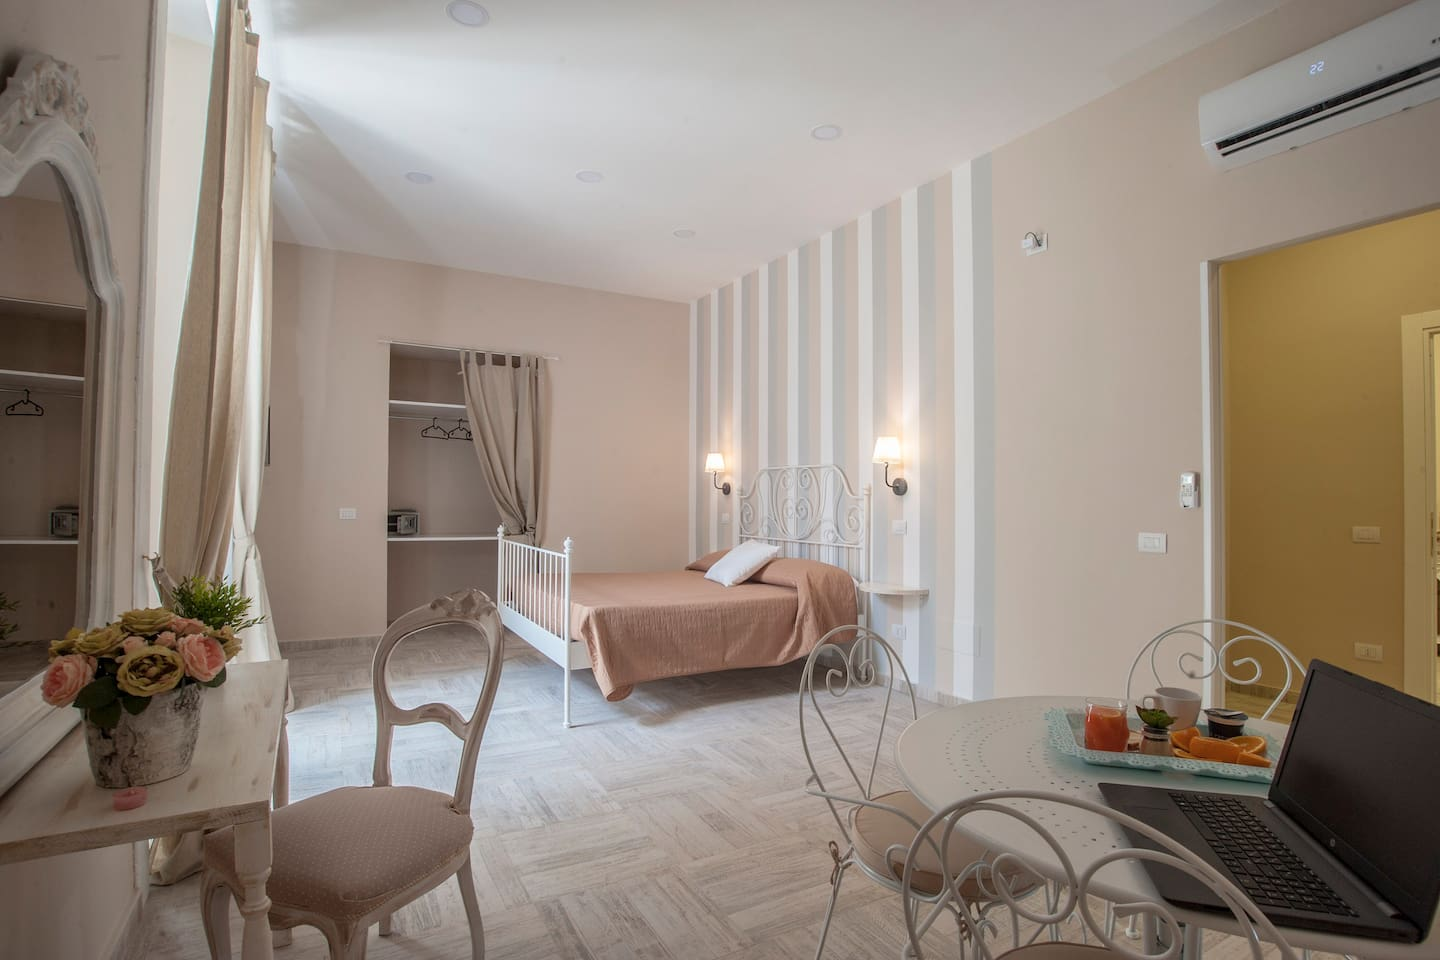 B&B Pontenuovo bed - Camera Toto\' - Bed and breakfasts for Rent in ...